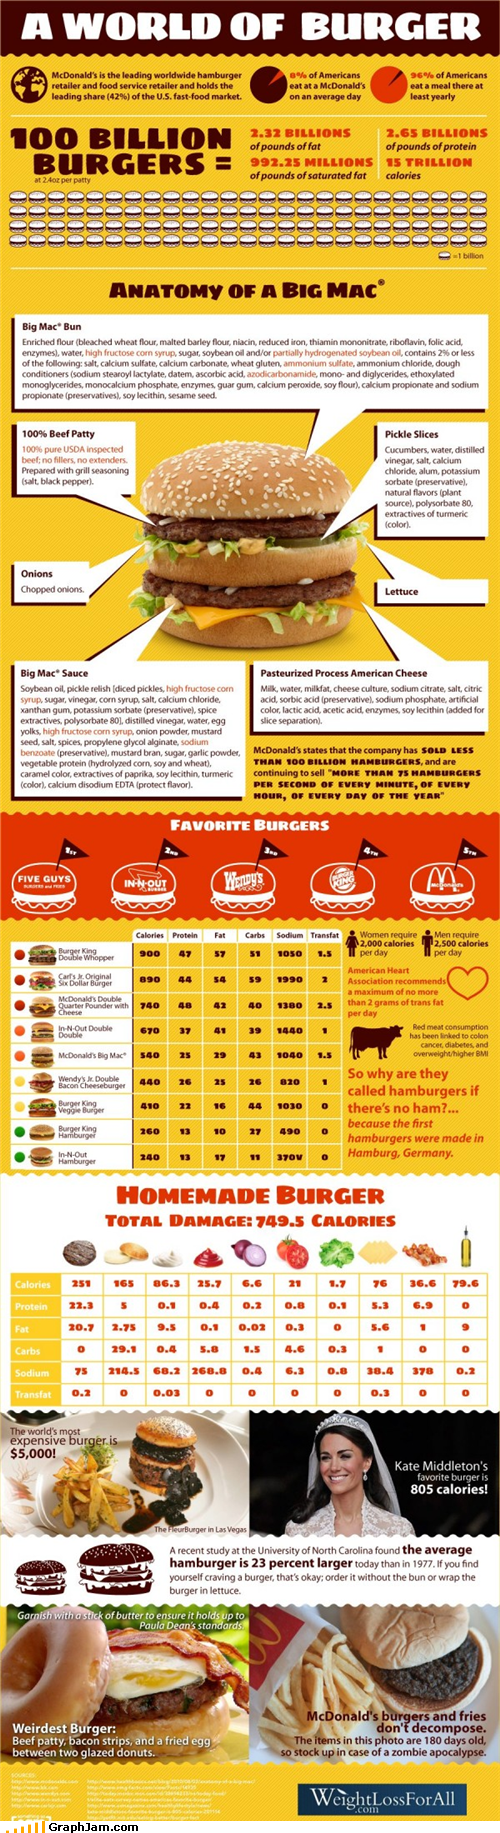 burgers,calories,gross,hamburgers,infographic,ingredients